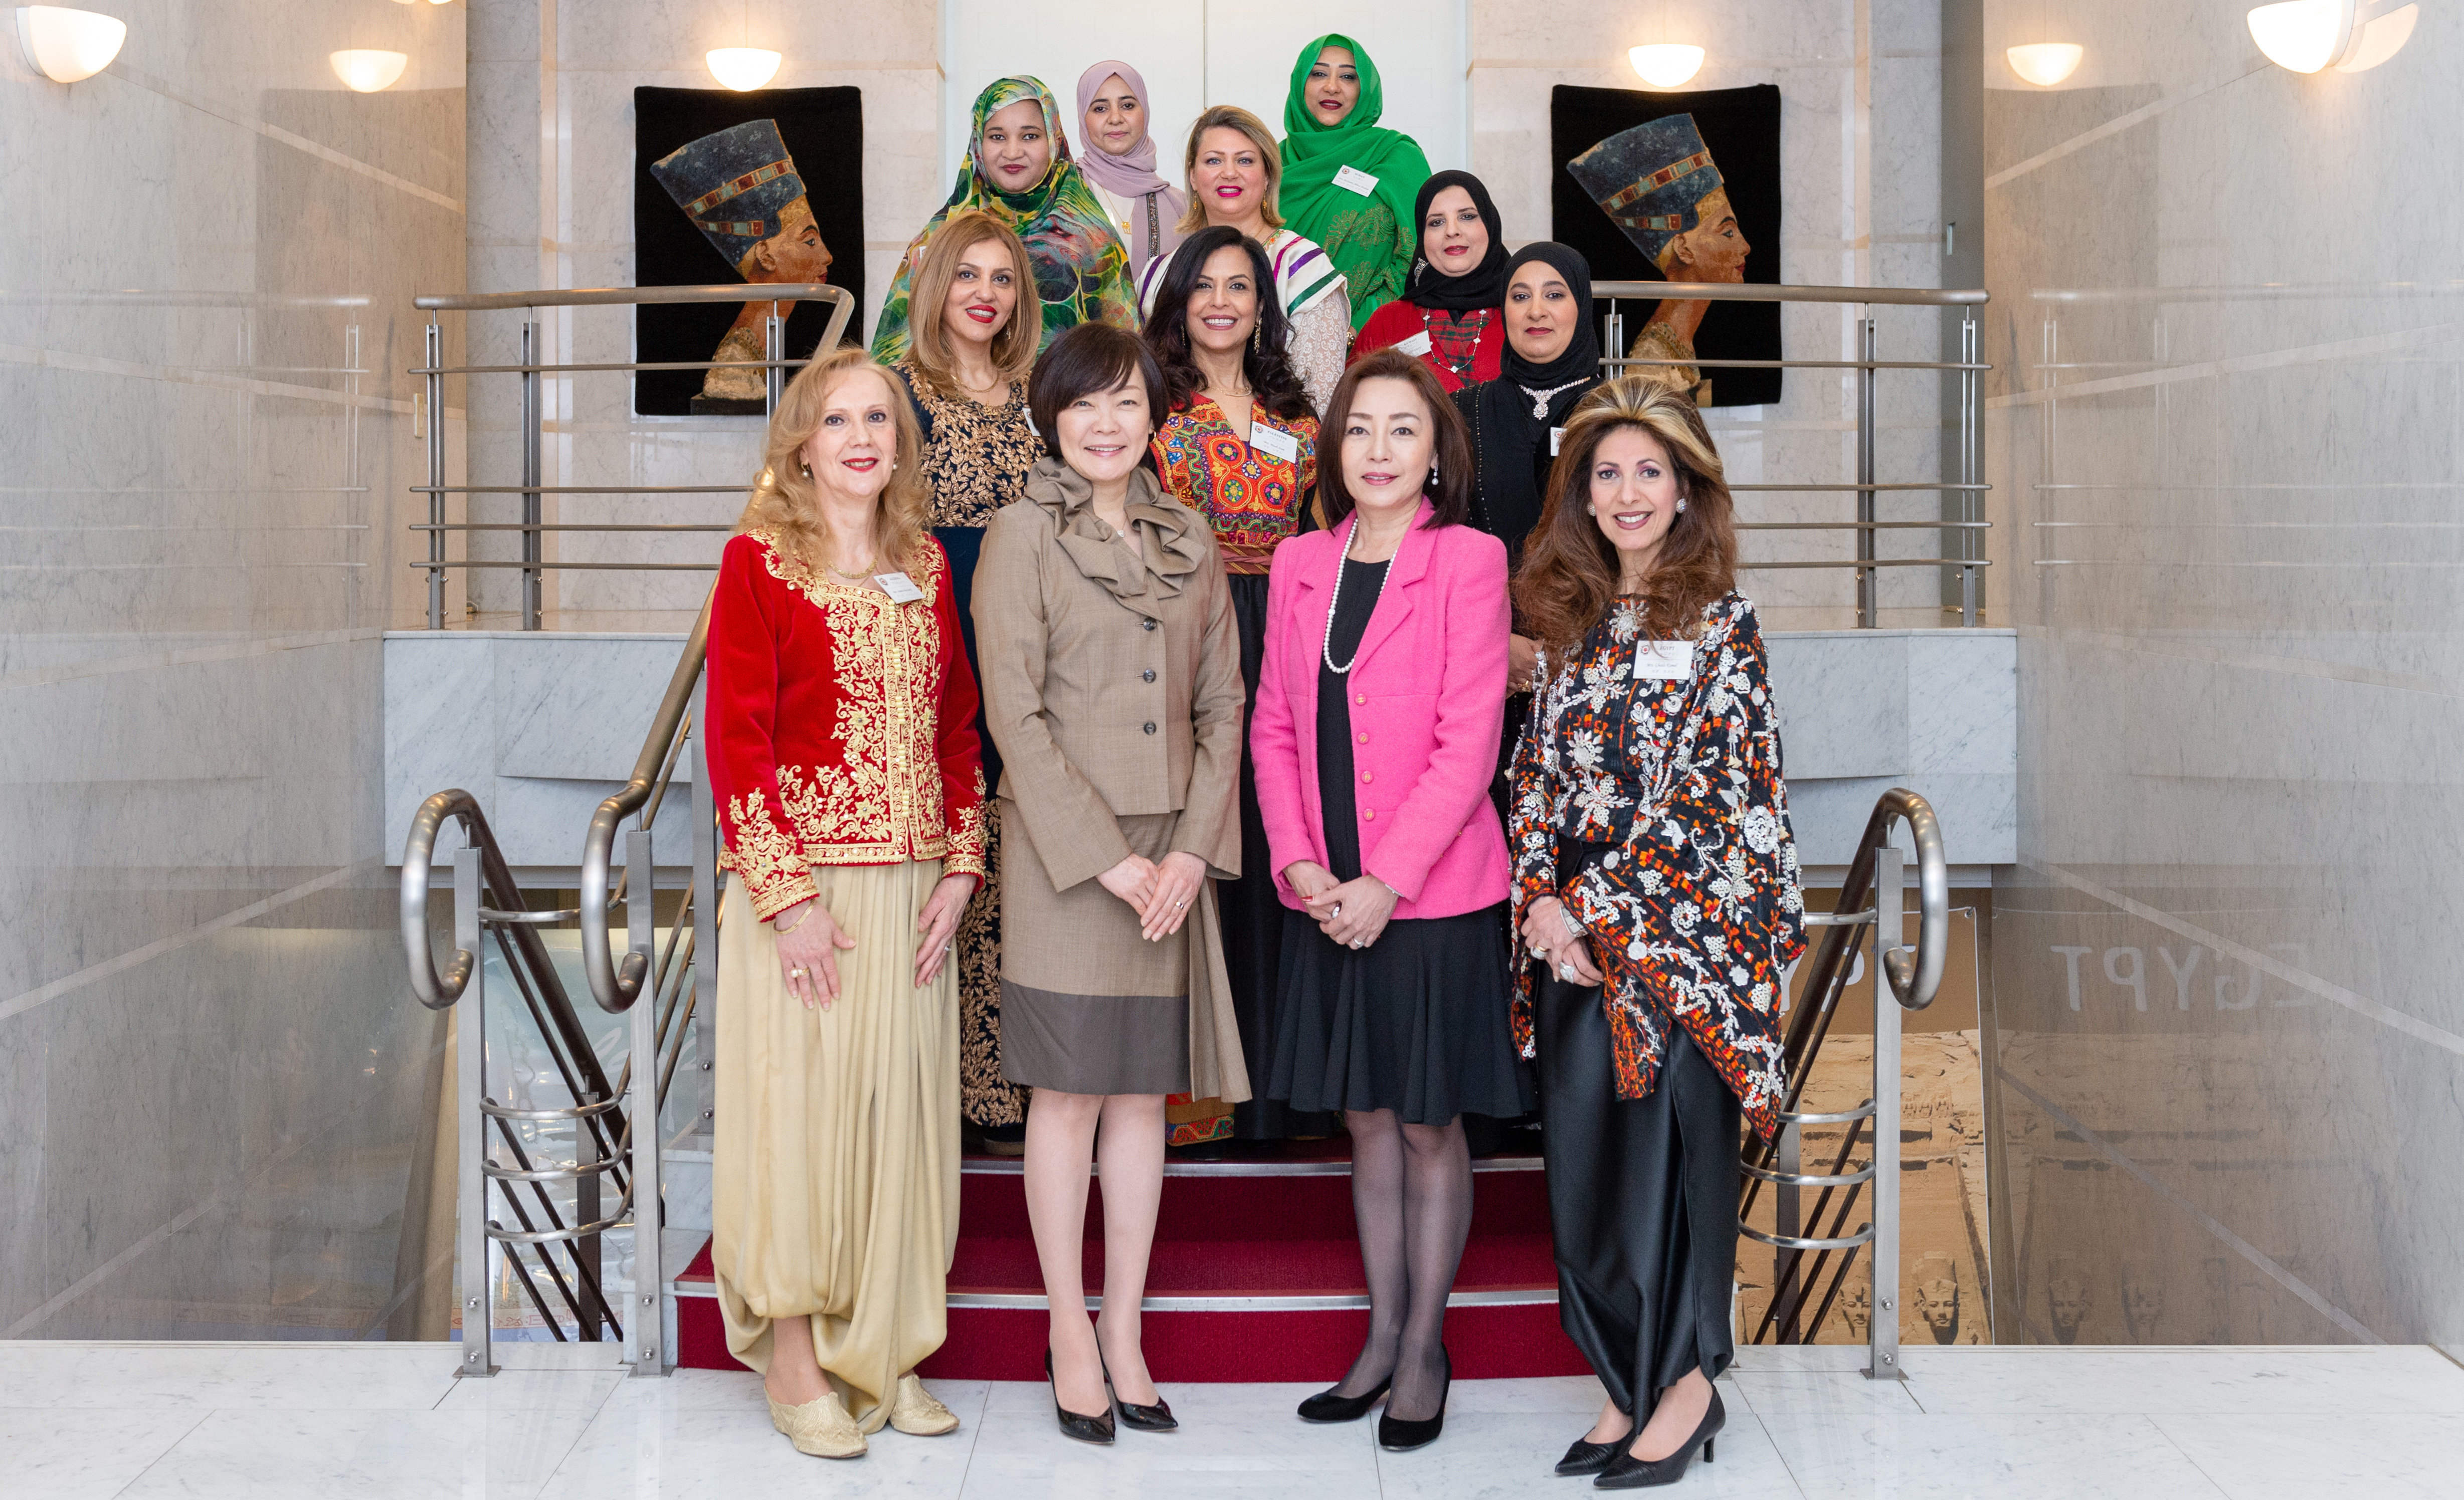 Japan's first lady Akie Abe (front row, second from left) and spouse of the minister for foreign affairs Emi Motegi (front row, second from right) pose for a group photo with President of  the Society of Arab Ambassadors and Heads of Missions in Japan (SWAAJ) and spouse of the Algerian ambassador Amira Bencherif (front row, left); SWAAJ Vice President and spouse of the Egyptian ambassador Ghada Kamel (front row, right); and other members at a luncheon hosted by SWAAJ at the Egyptian ambassador's residence on Feb. 13. Other members include representatives from Lebanon, Palestine, Bahrain, Mauritania, Tunisia, Kuwait, Oman and Sudan. | MIKI OSHITA